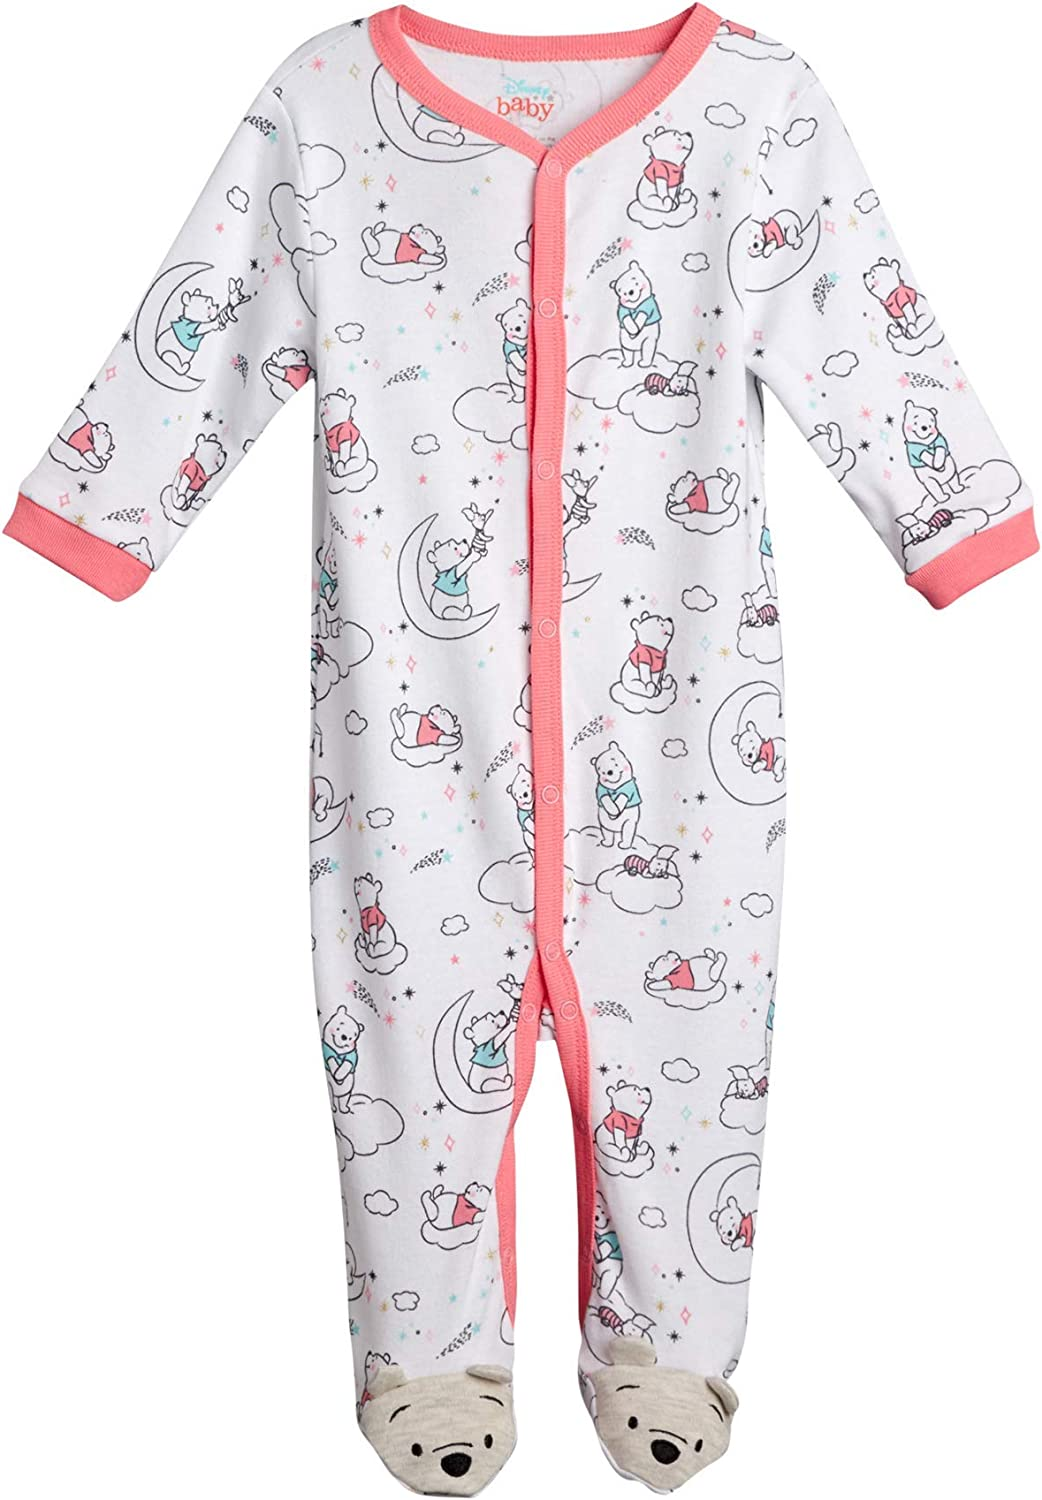 Disney Baby Girls Newborn Cotton Footed Sleep and Play - Minnie Mouse, Winnie The Pooh, and Princess Aurora